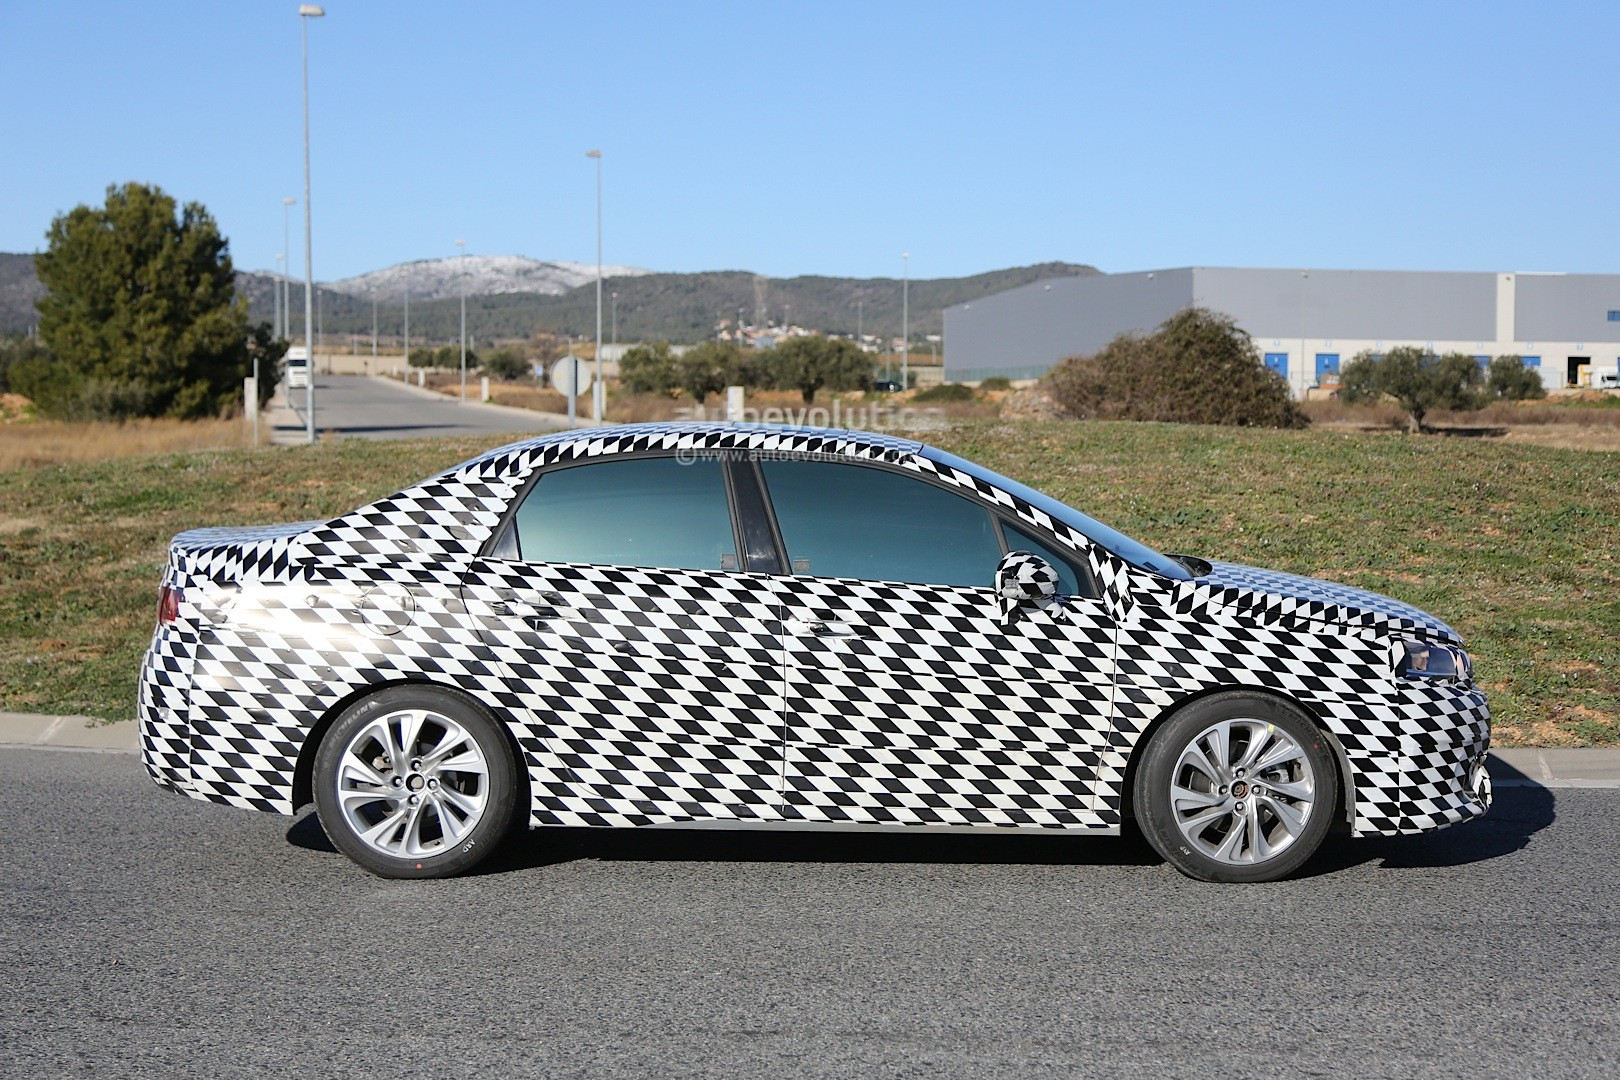 2015 - [Citroën] C4 C-Quatre - Page 2 Mystery-citroen-compact-sedan-spied-testing-in-spain-could-be-the-new-c4-lunge_8